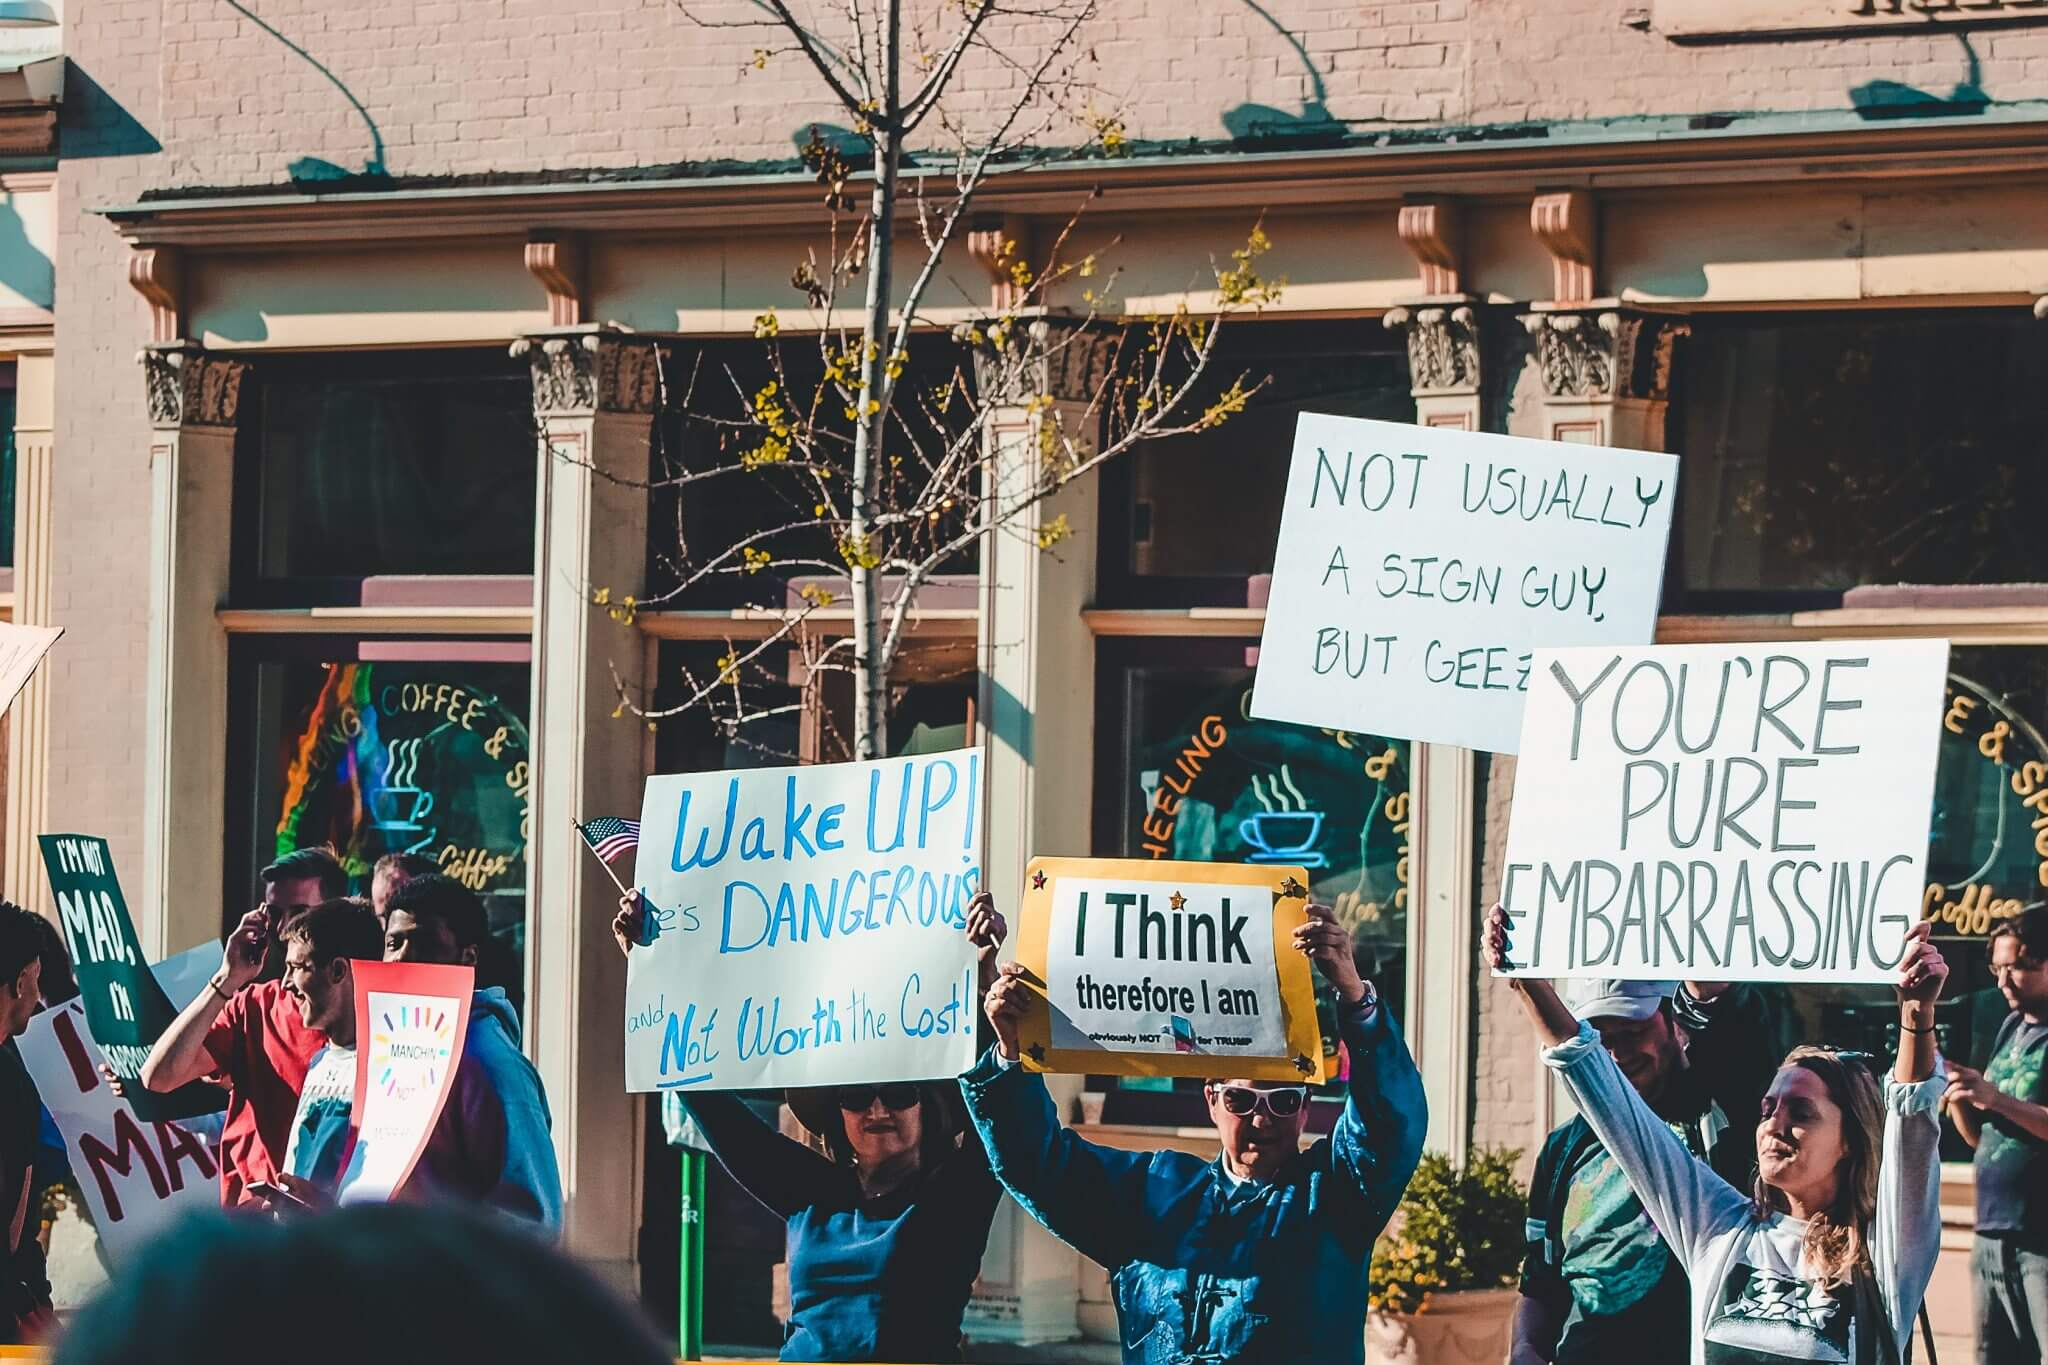 Picture of a rally of protesters holding up signs and demonstrating.